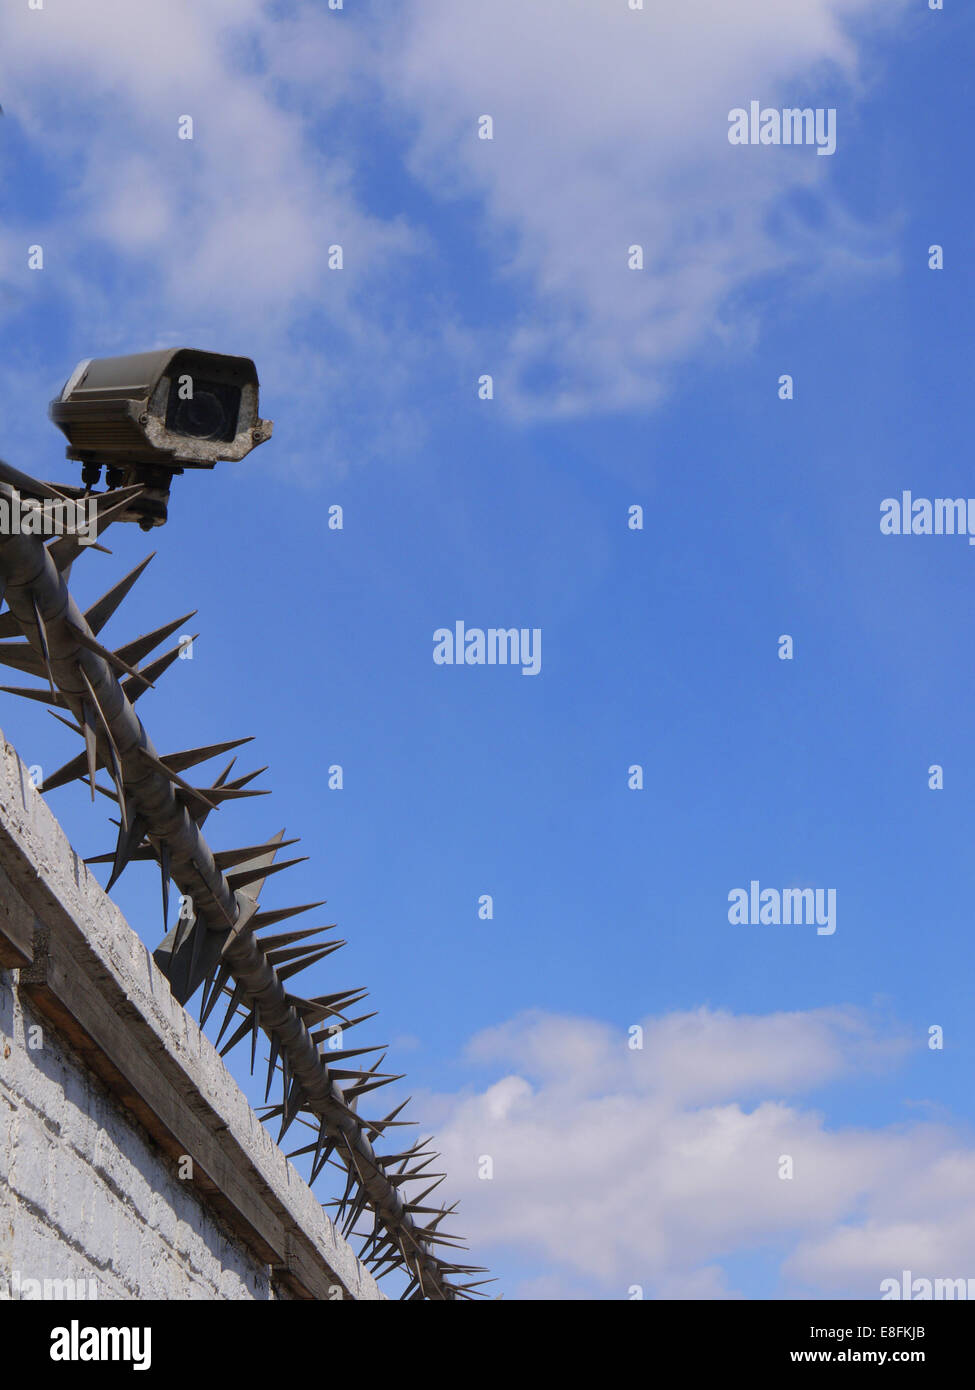 Security Camera And Rota Spike Security Fencing - Stock Image